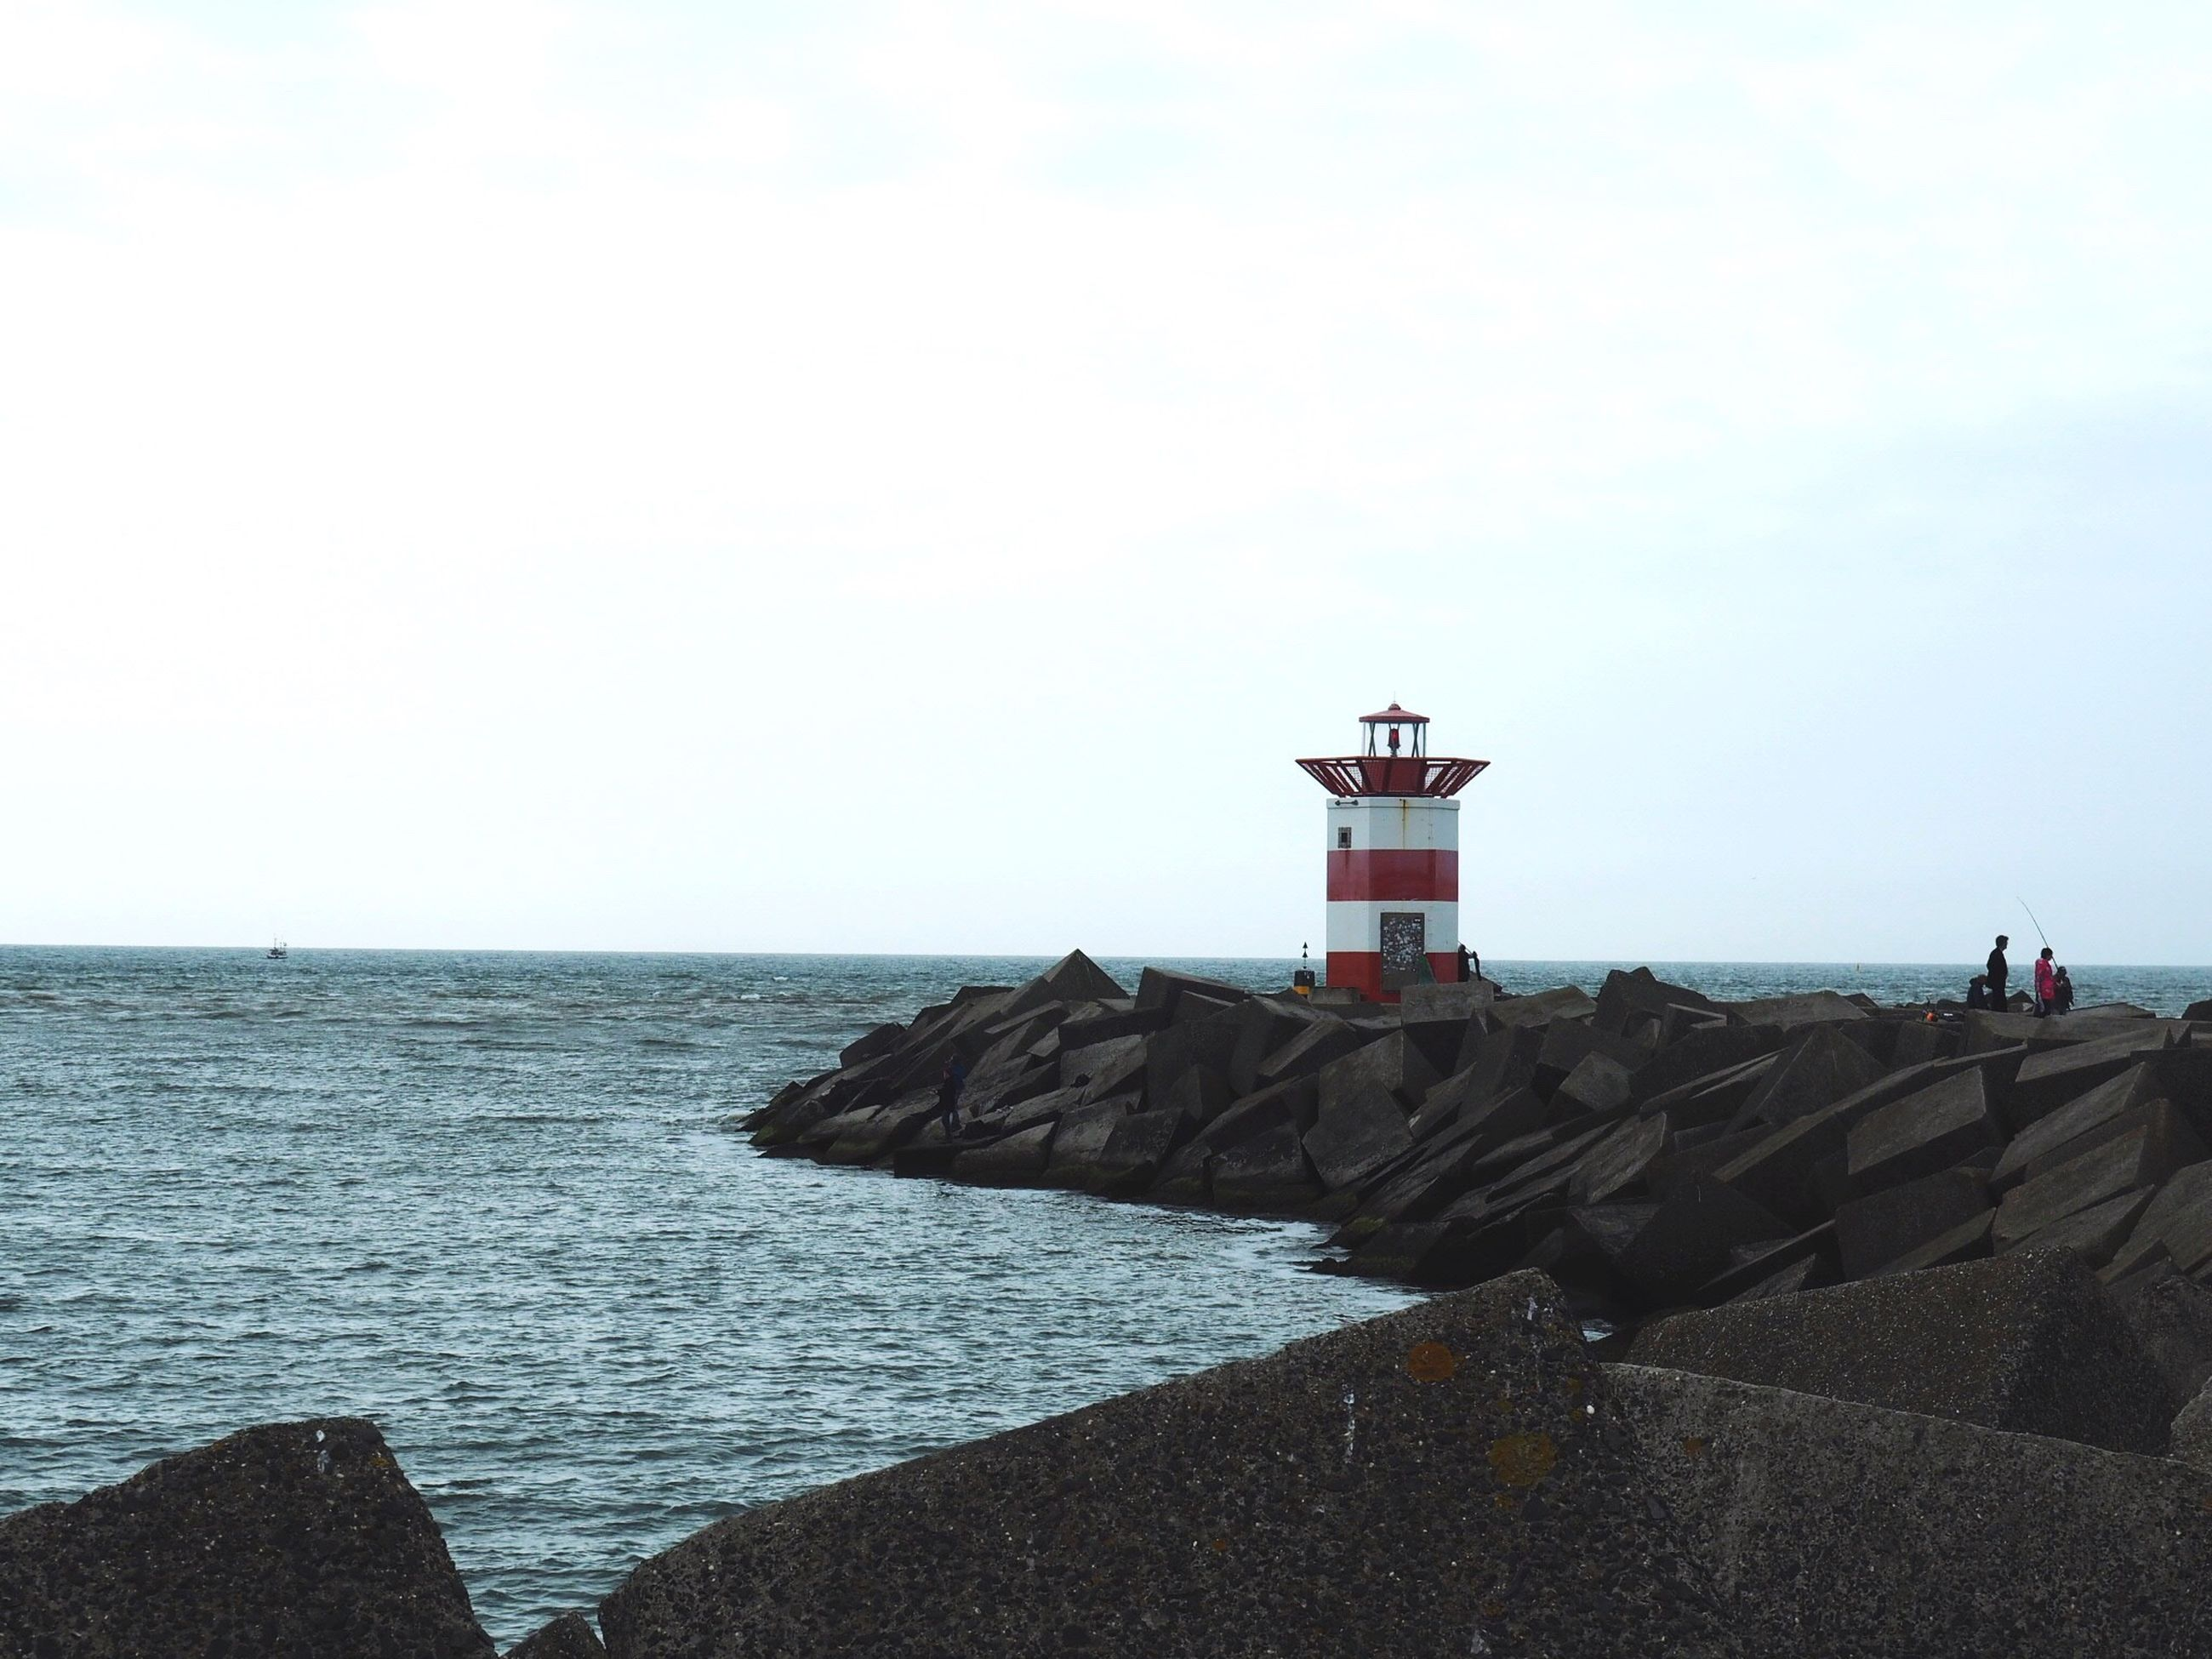 sea, horizon over water, water, direction, lighthouse, tranquil scene, rock - object, tourism, tranquility, scenics, rock formation, travel destinations, sky, nature, beauty in nature, shore, outdoors, cliff, person, non-urban scene, day